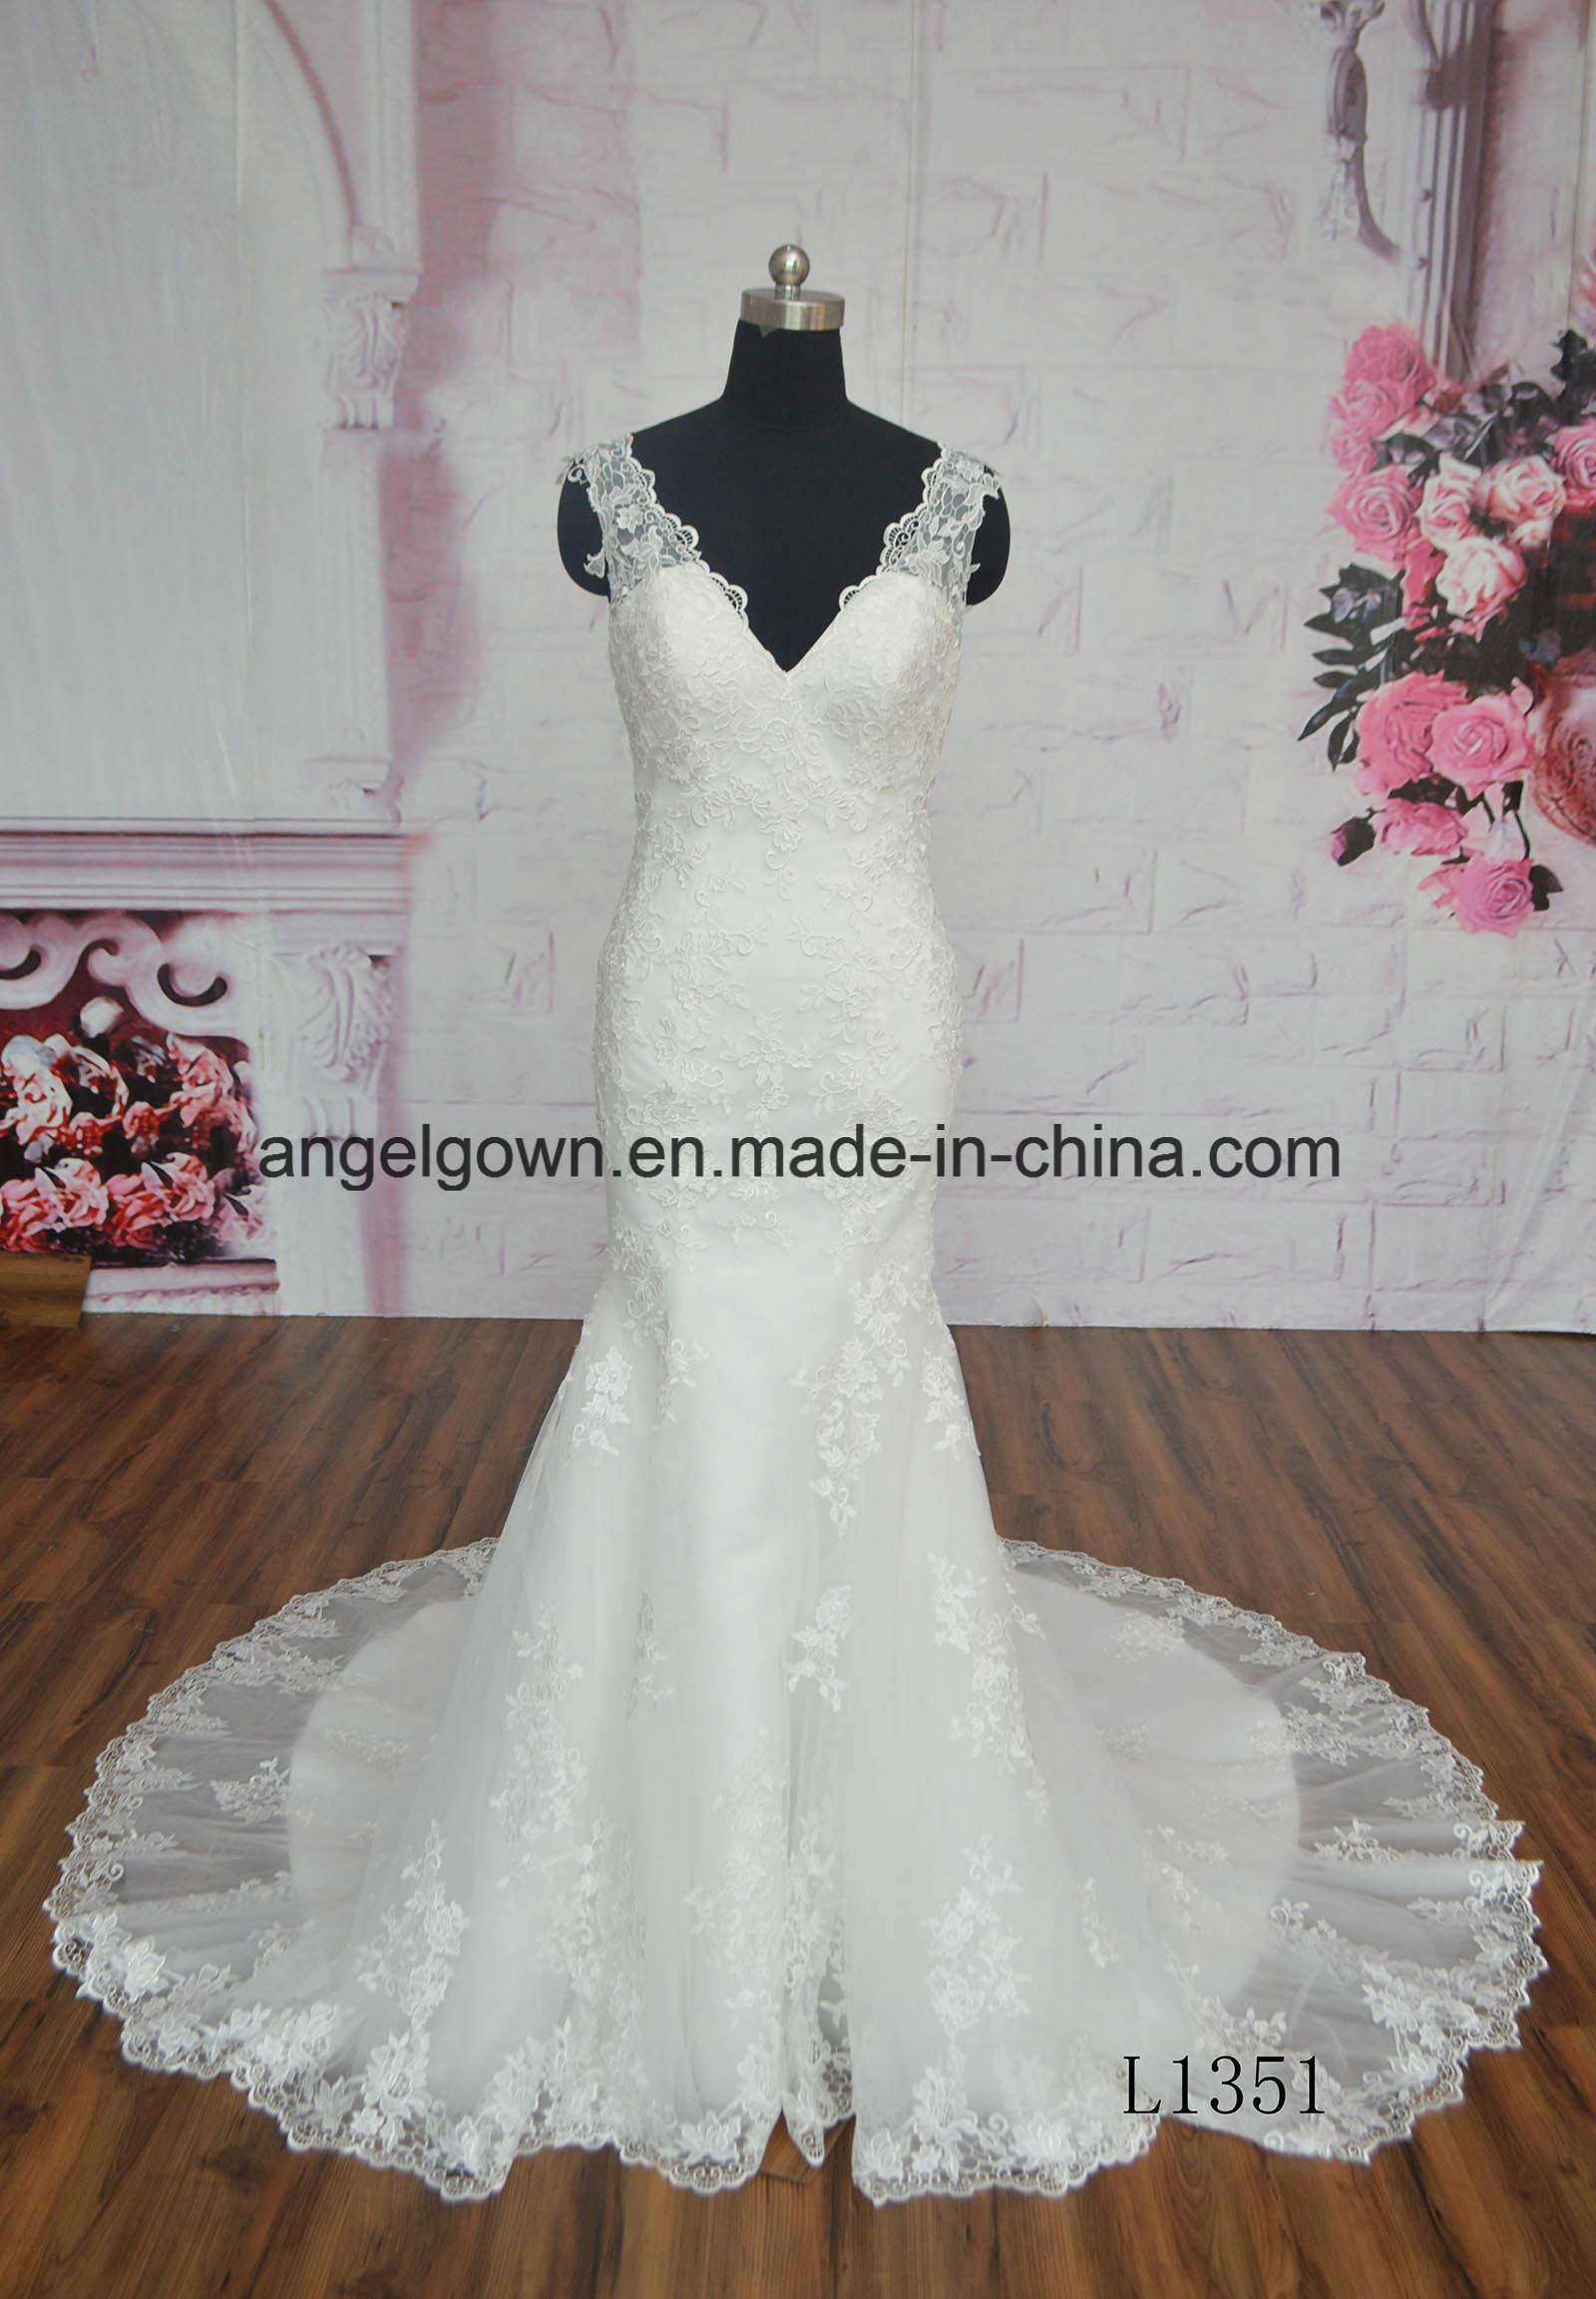 Discount Bridal Party Cocktail Bridesmaid Prom Wedding Evening Dresses